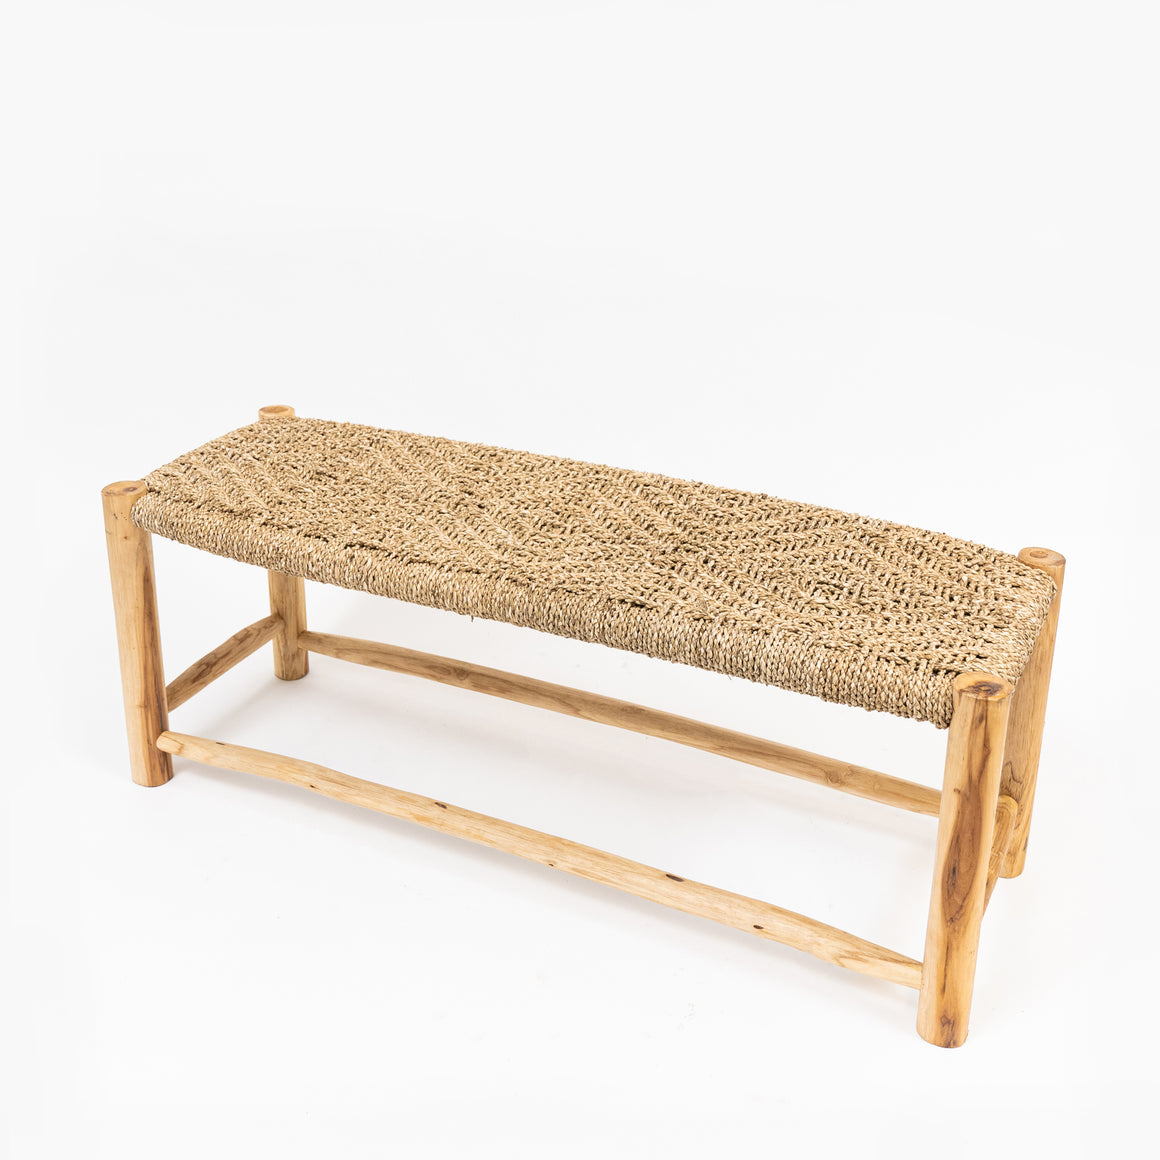 Handmade seagrass bench